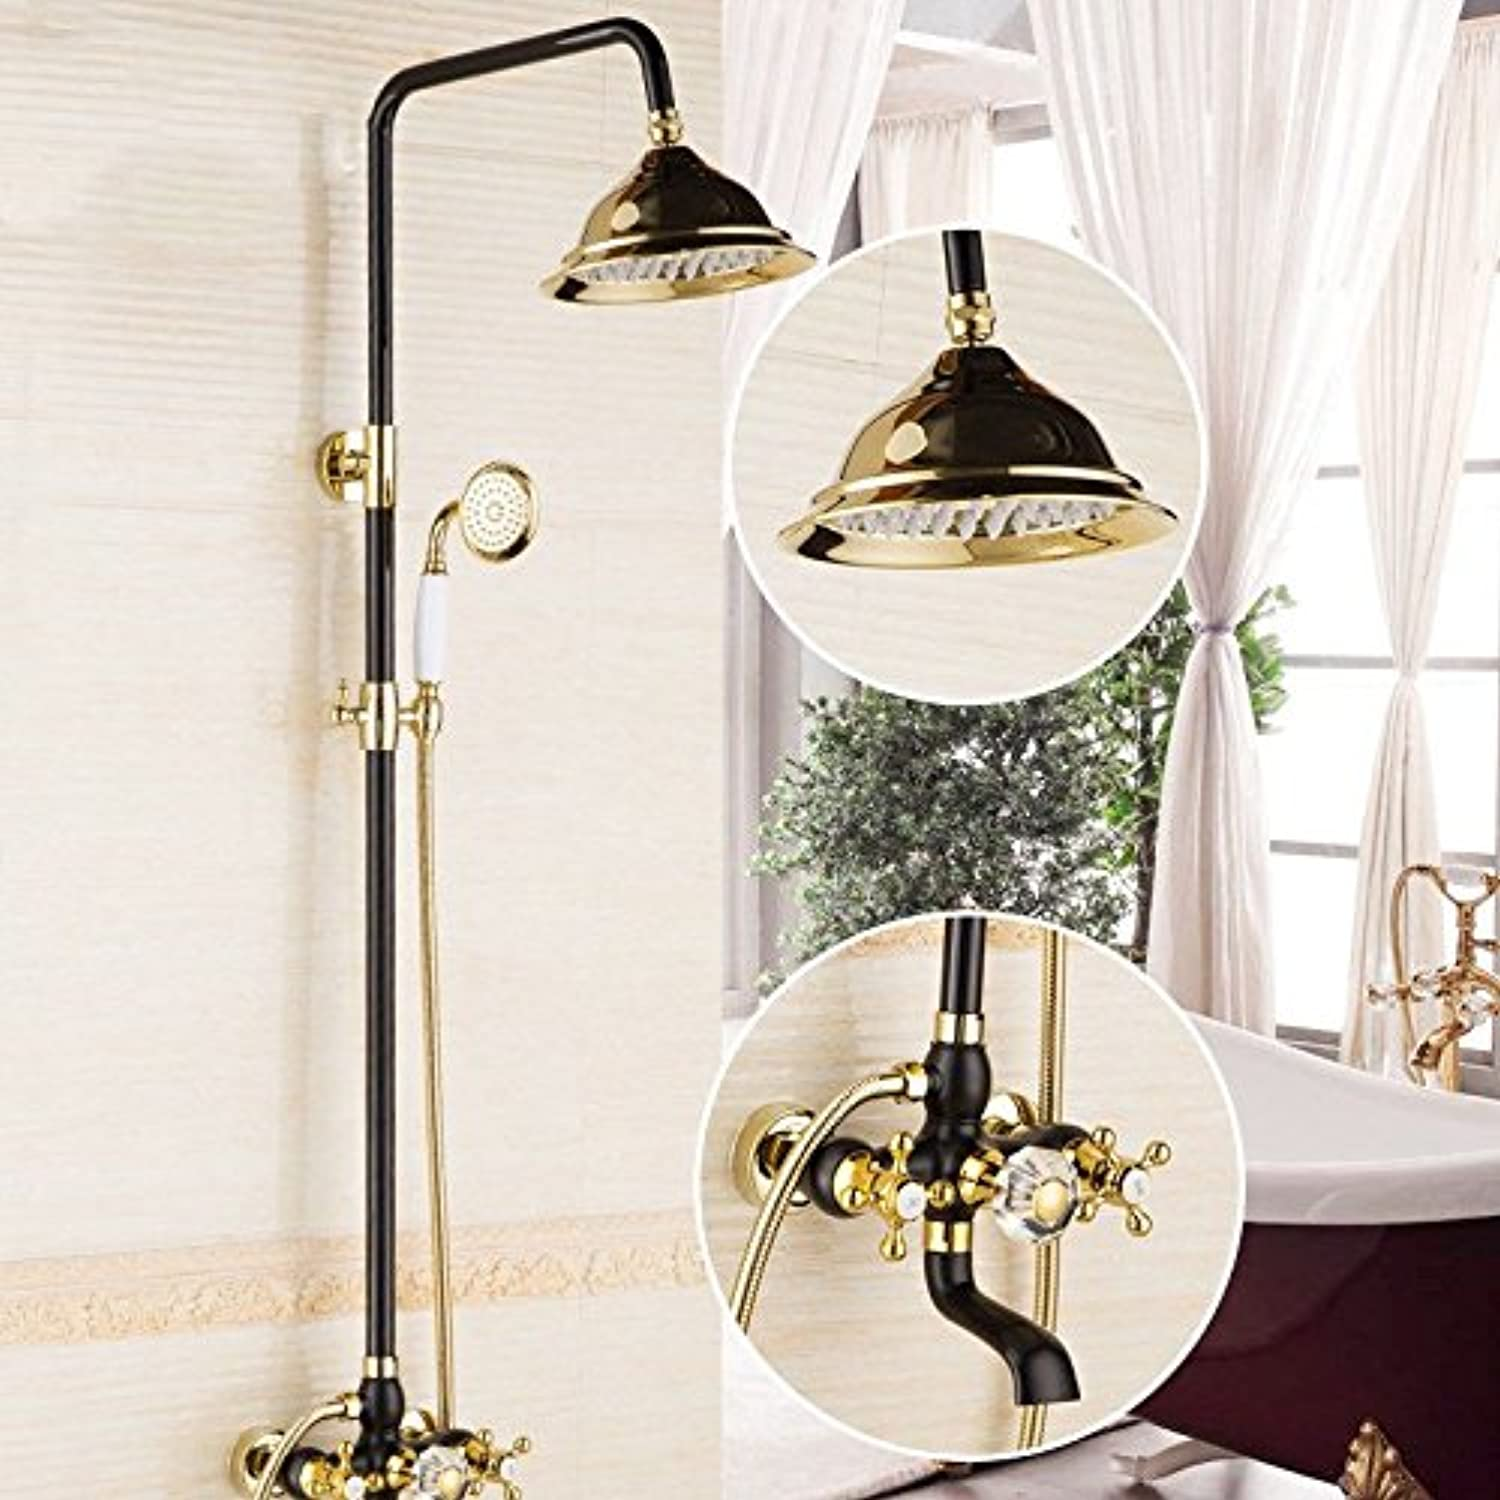 S.Twl.E Sink Mixer Tap Faucet Bathroom Kitchen Basin Tap Leakproof Save Water brass gold pink gold shower Faucet pressure with lifting shower B